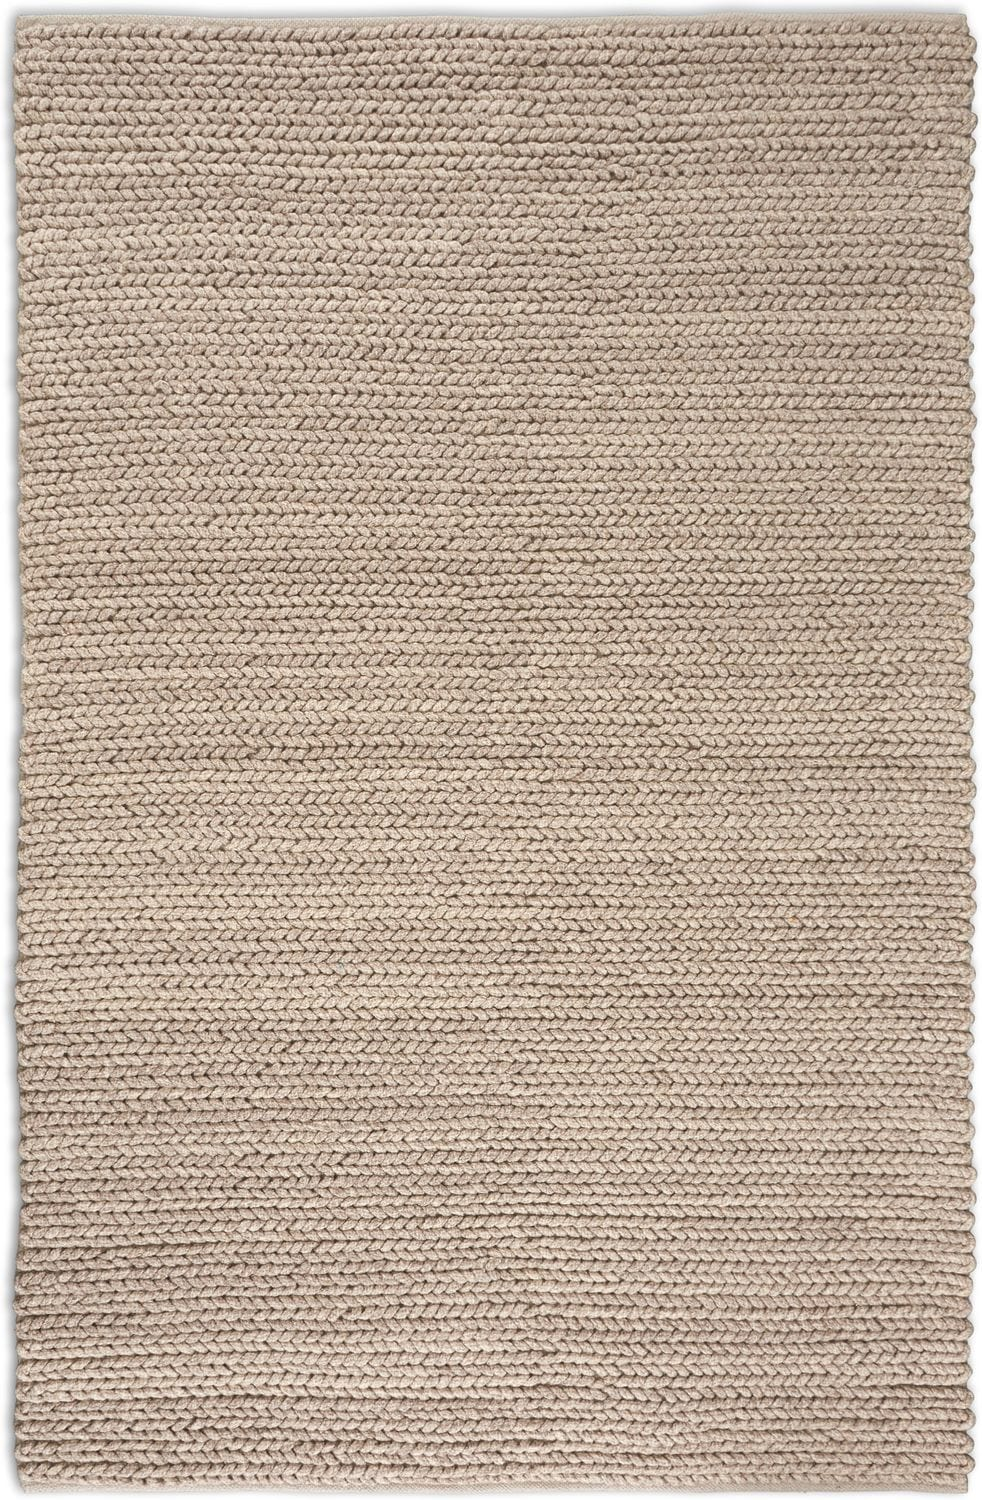 Rugs - Europa Area Rug - Natural